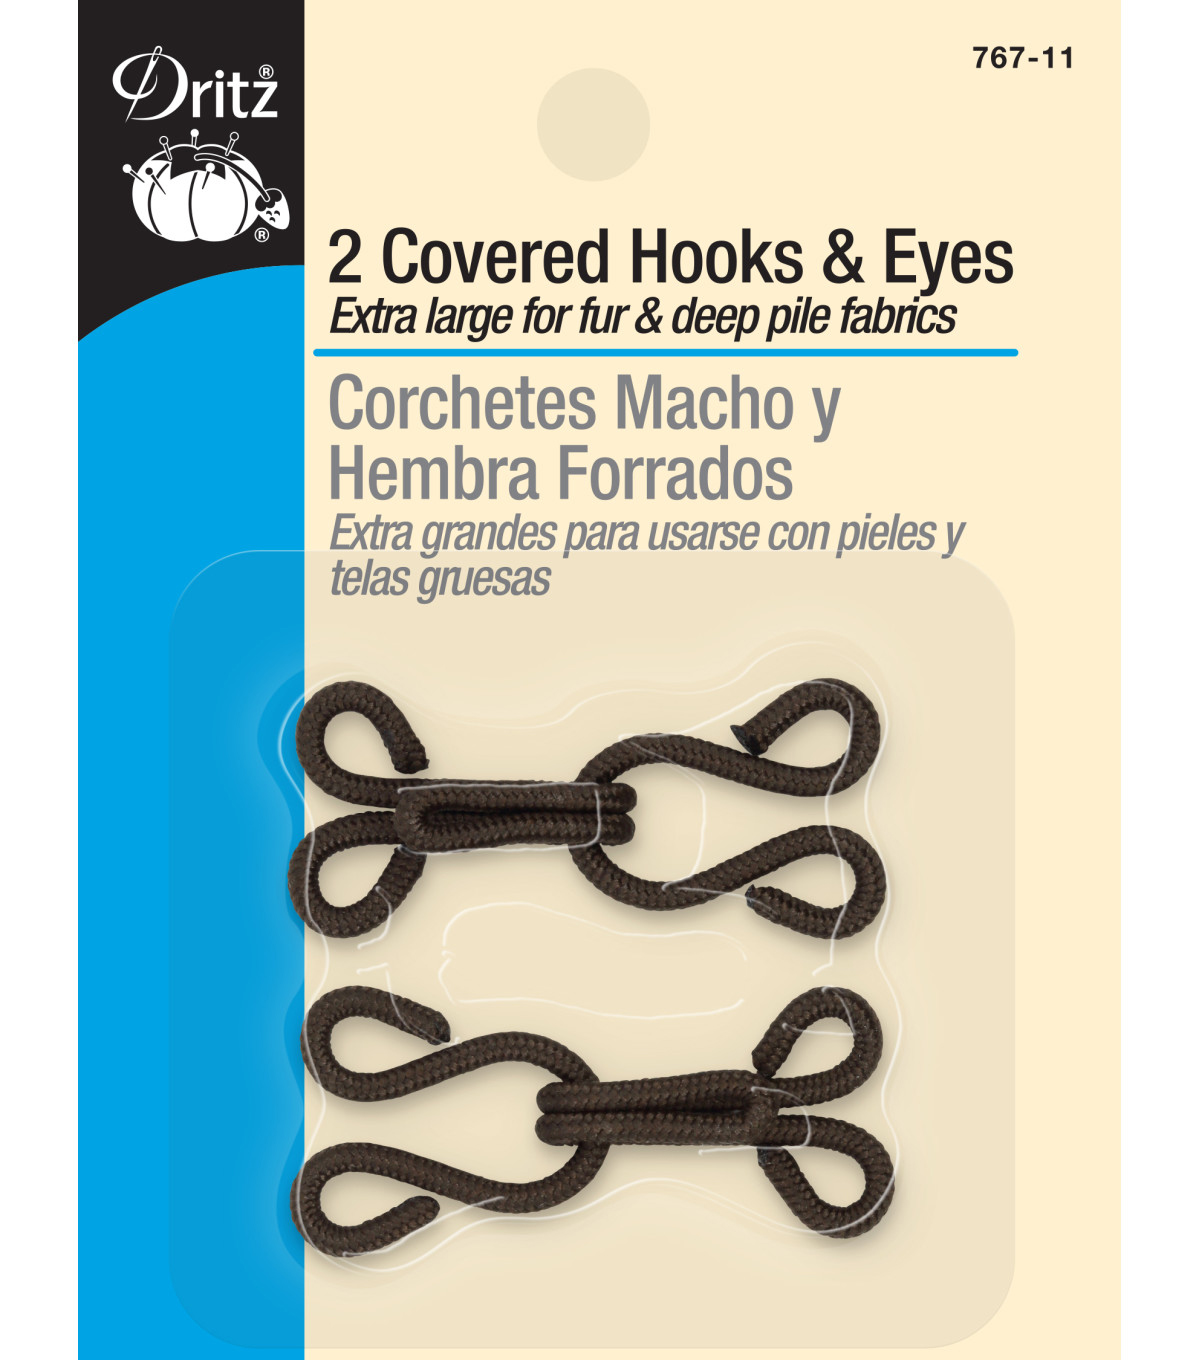 Dritz Covered Hooks & Eyes 2pcs Brown